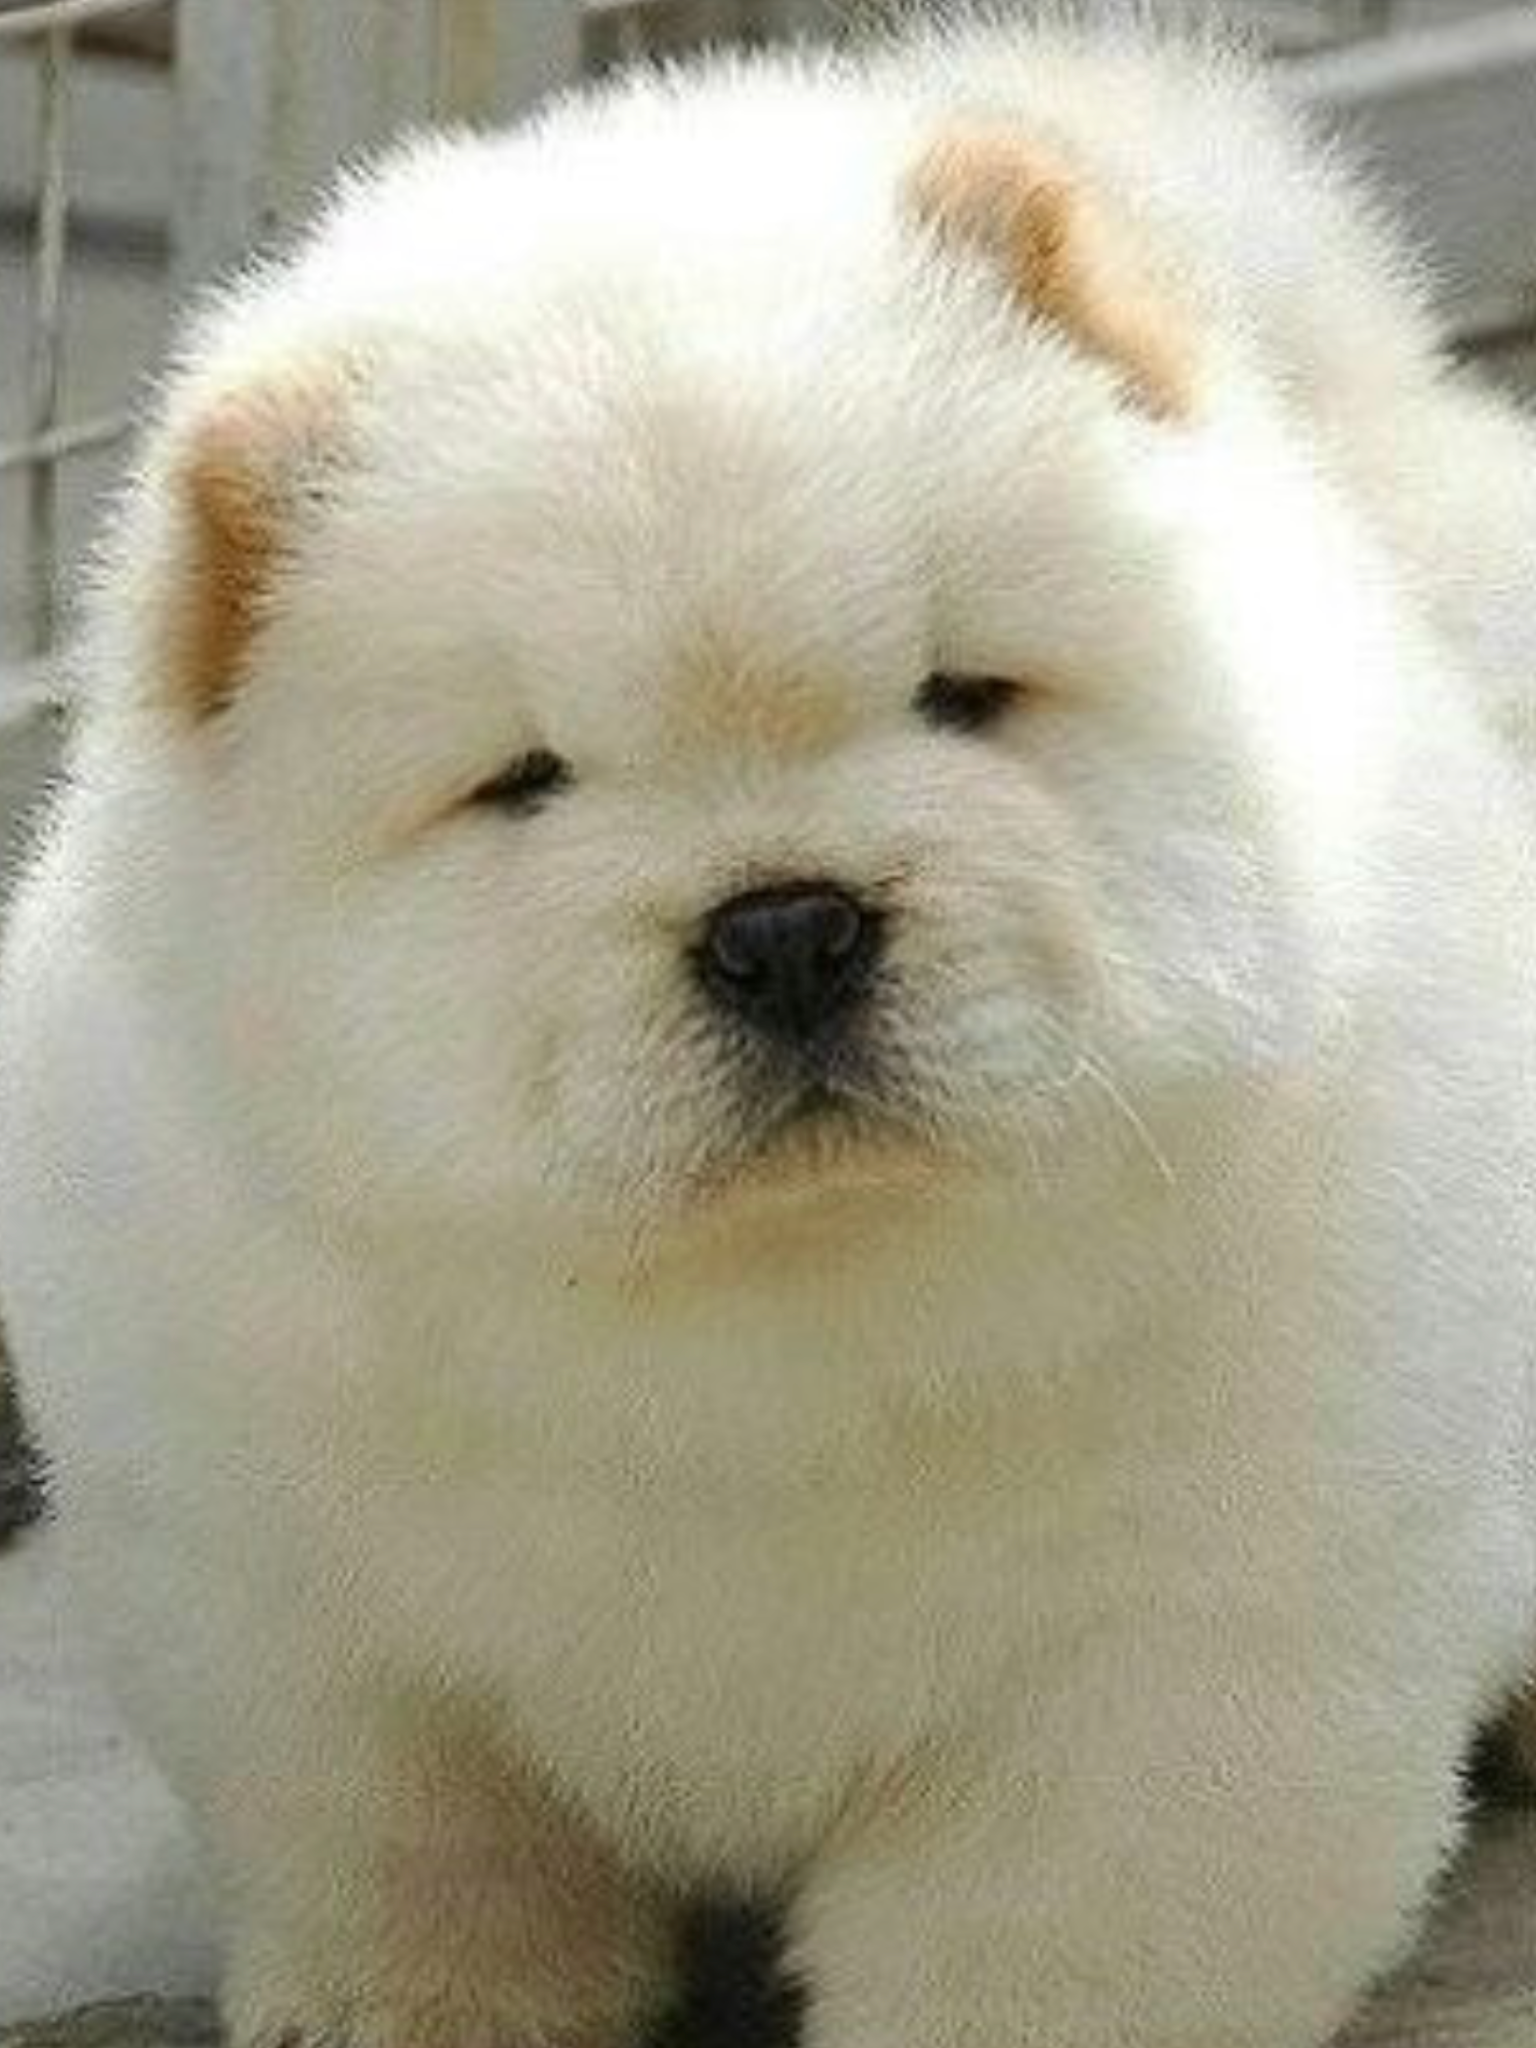 Fluffy overload (With images) Cute animals, Pets, Animals